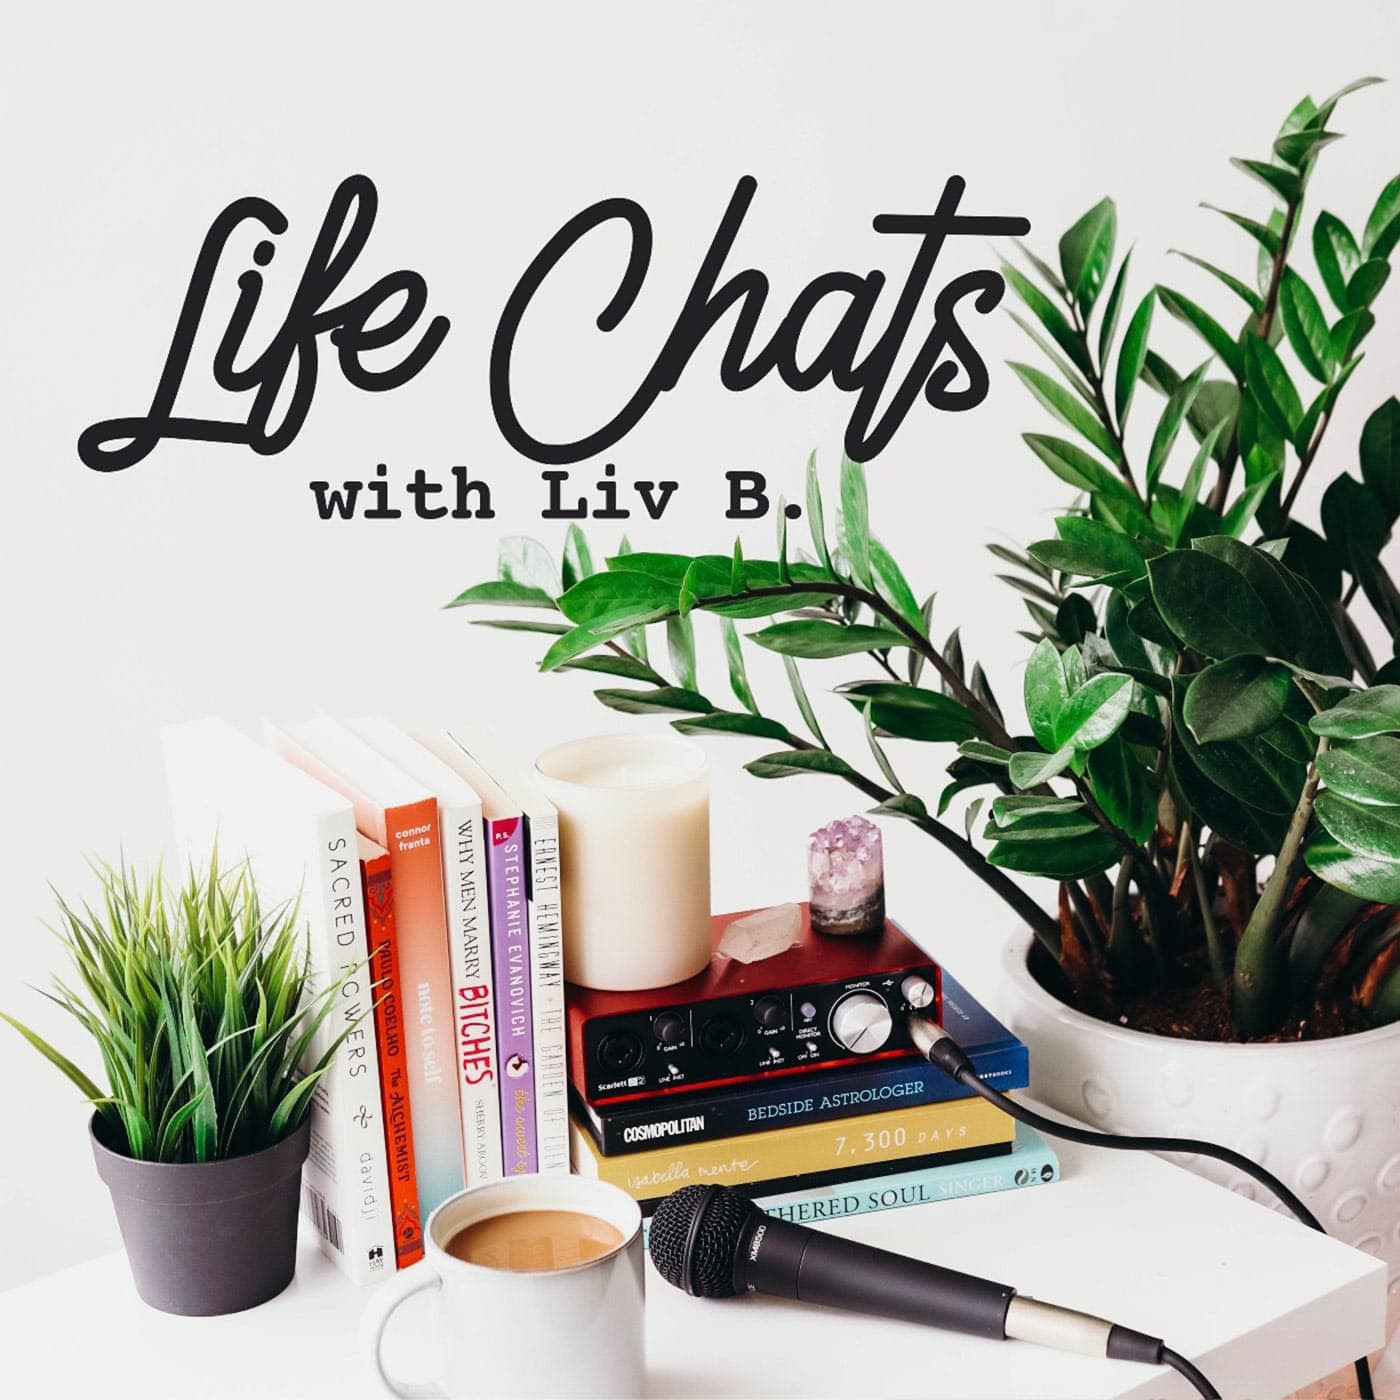 Life Chats with Liv B Introduction